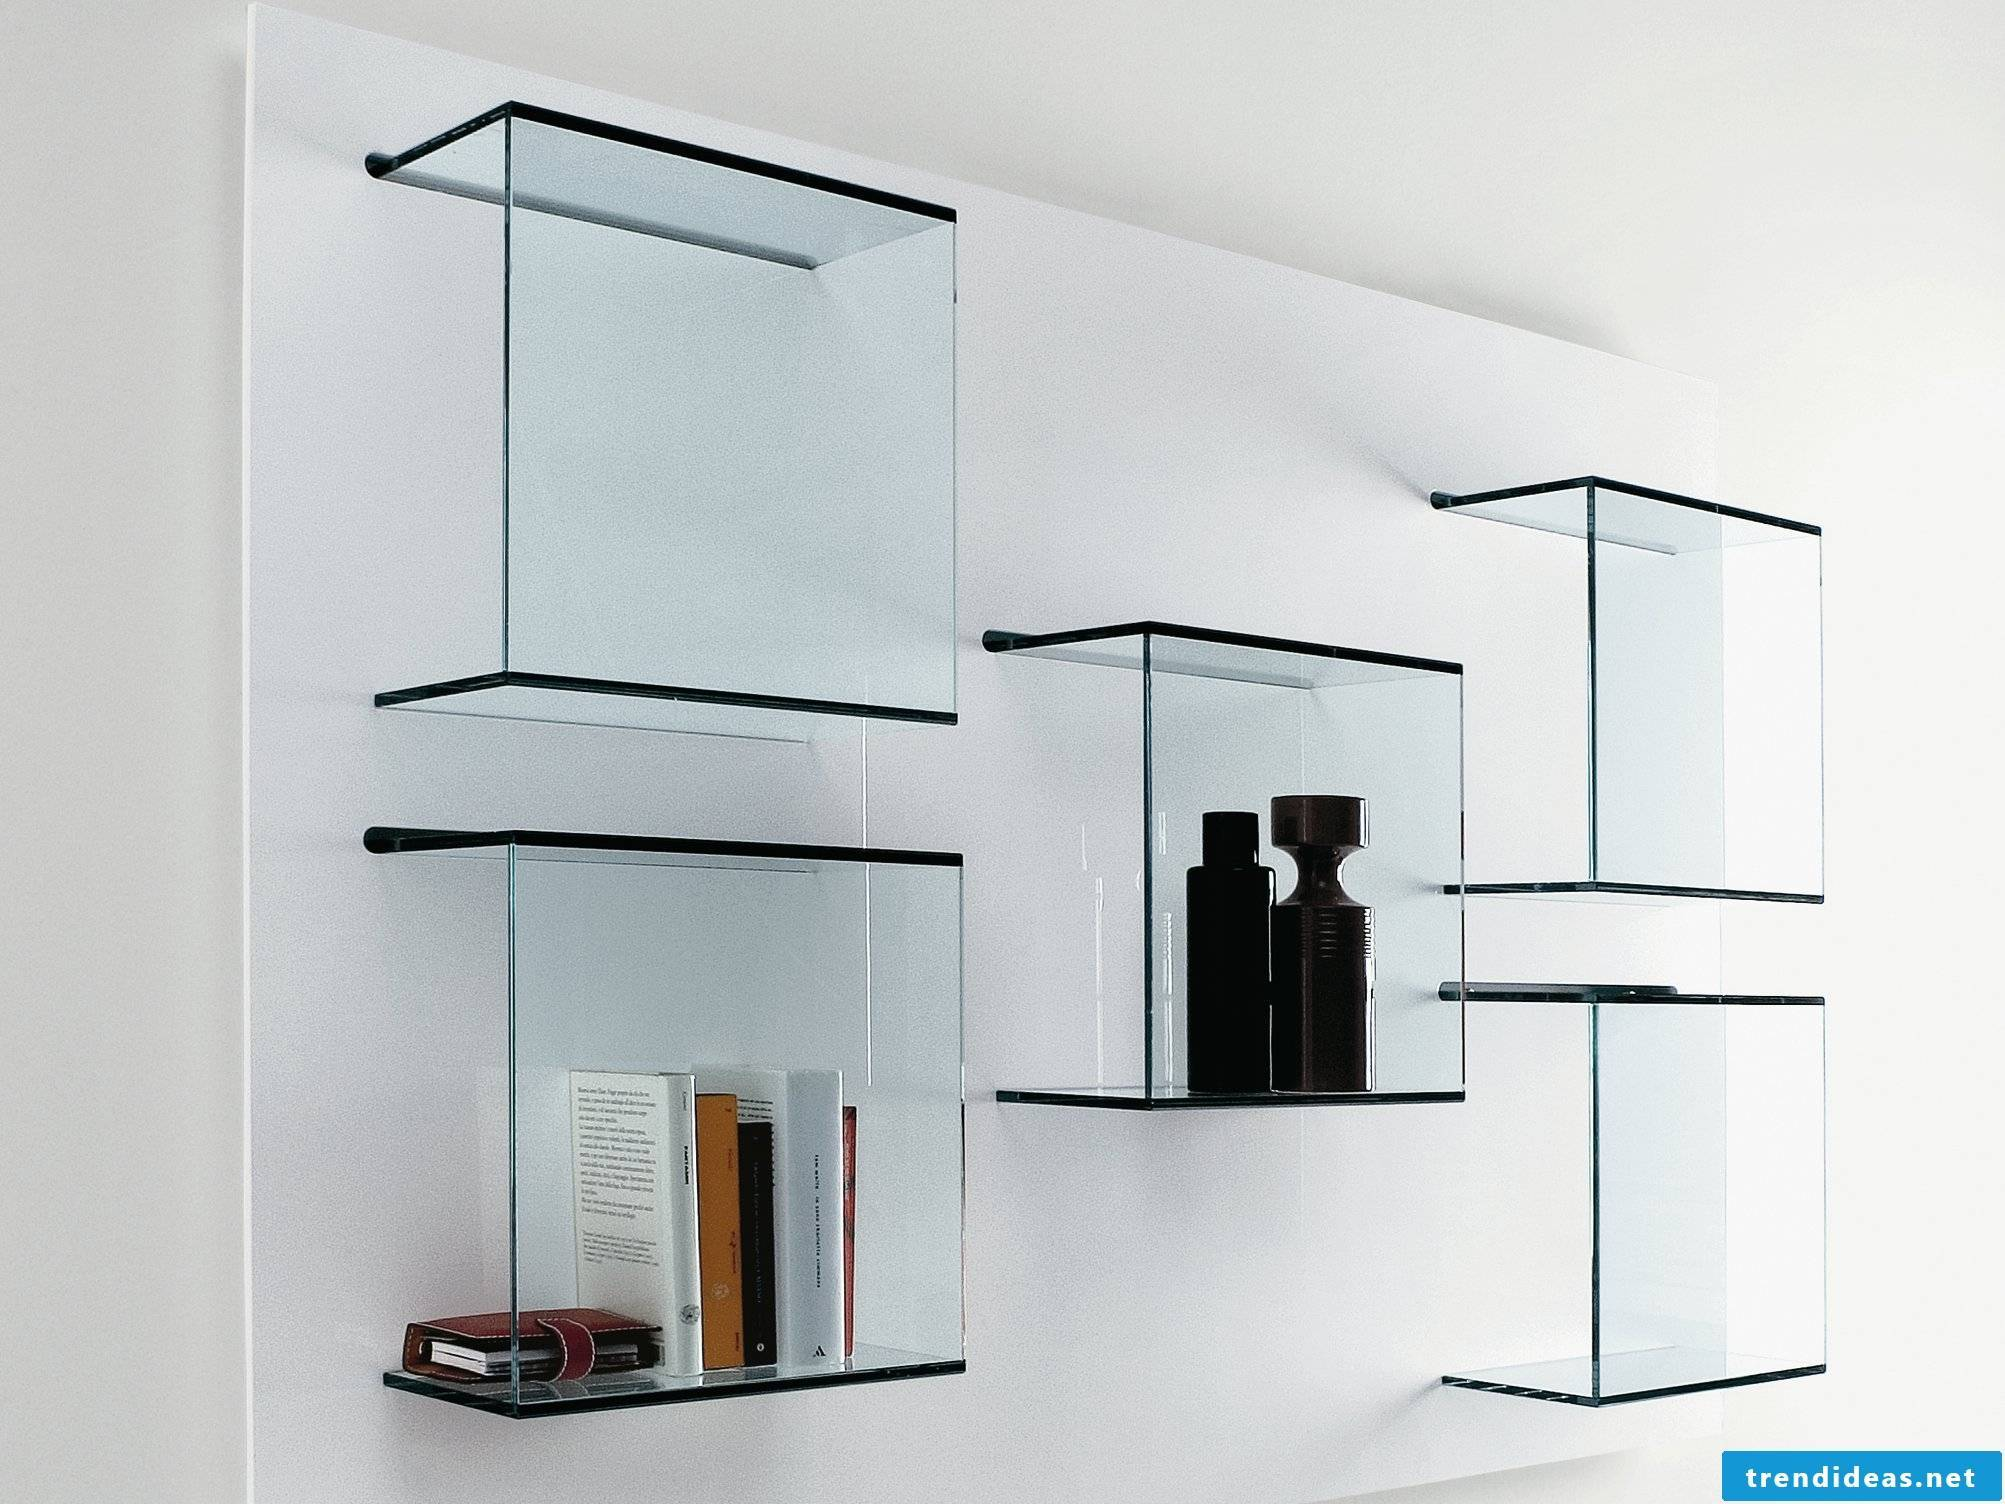 Ideas for glass shelves